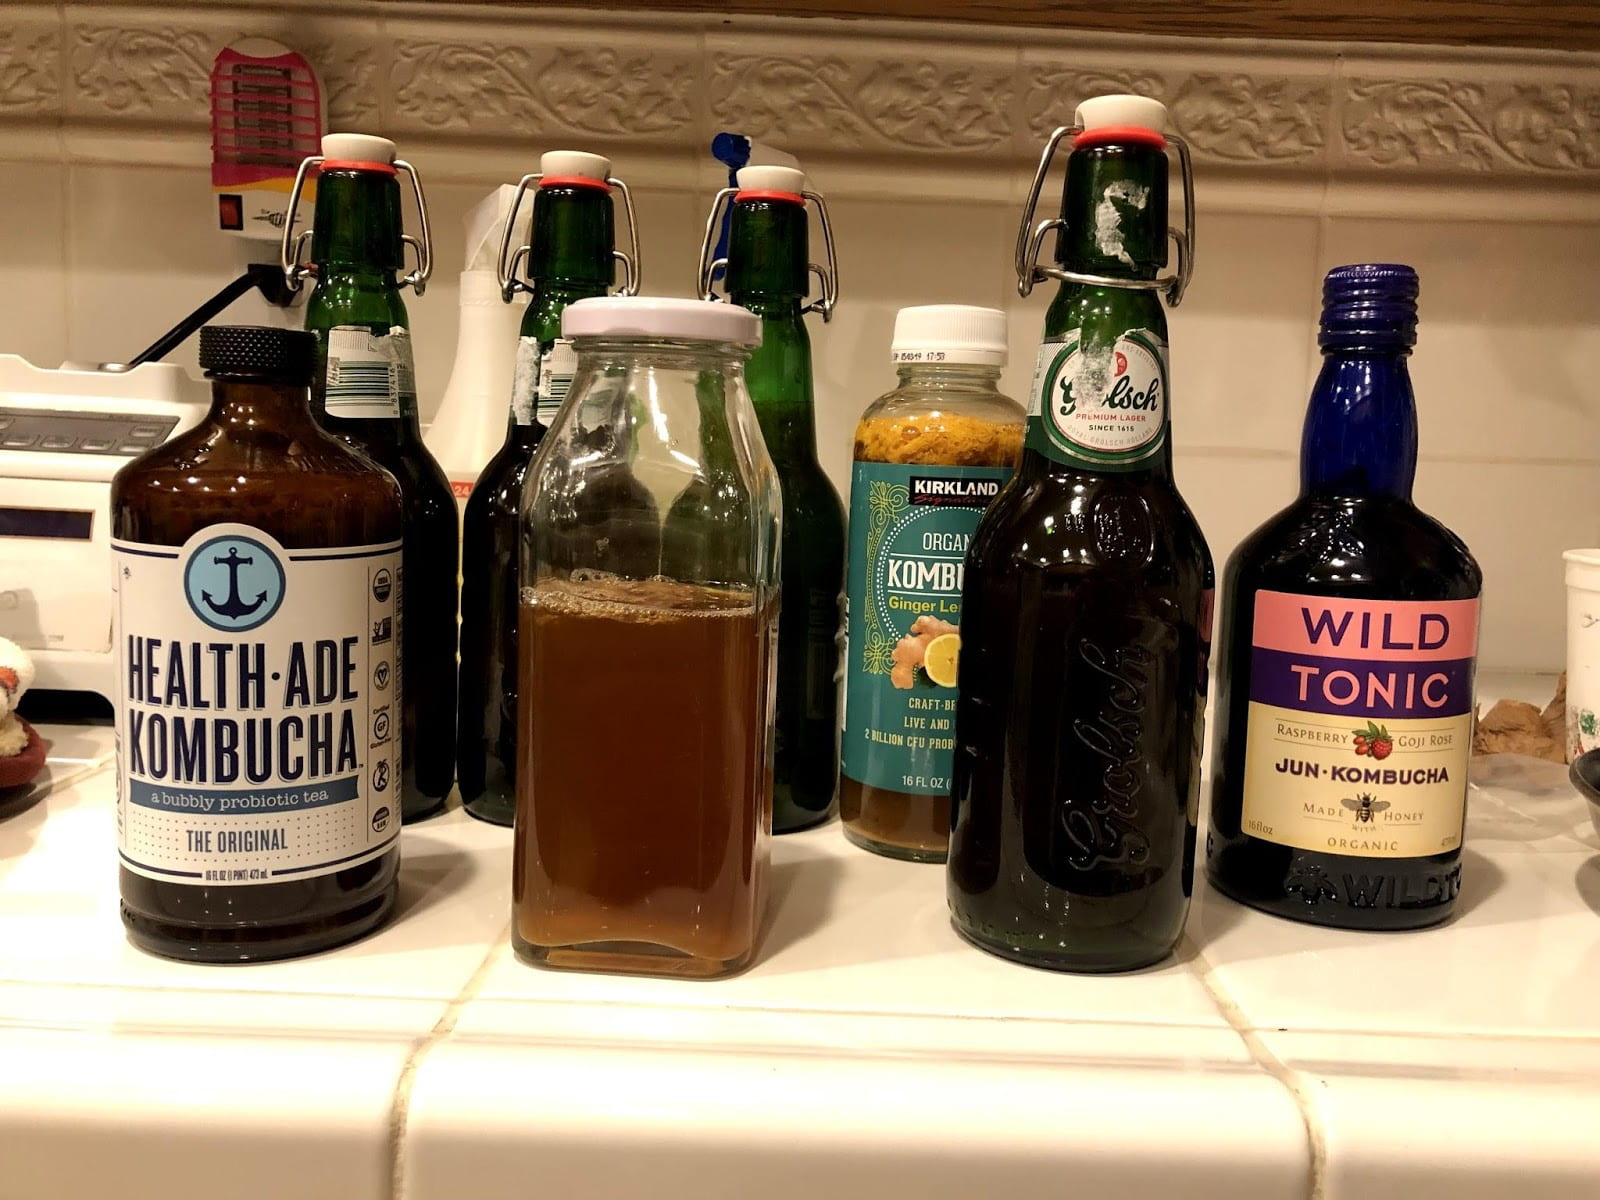 All ingredients required for the second kombucha fermentation.